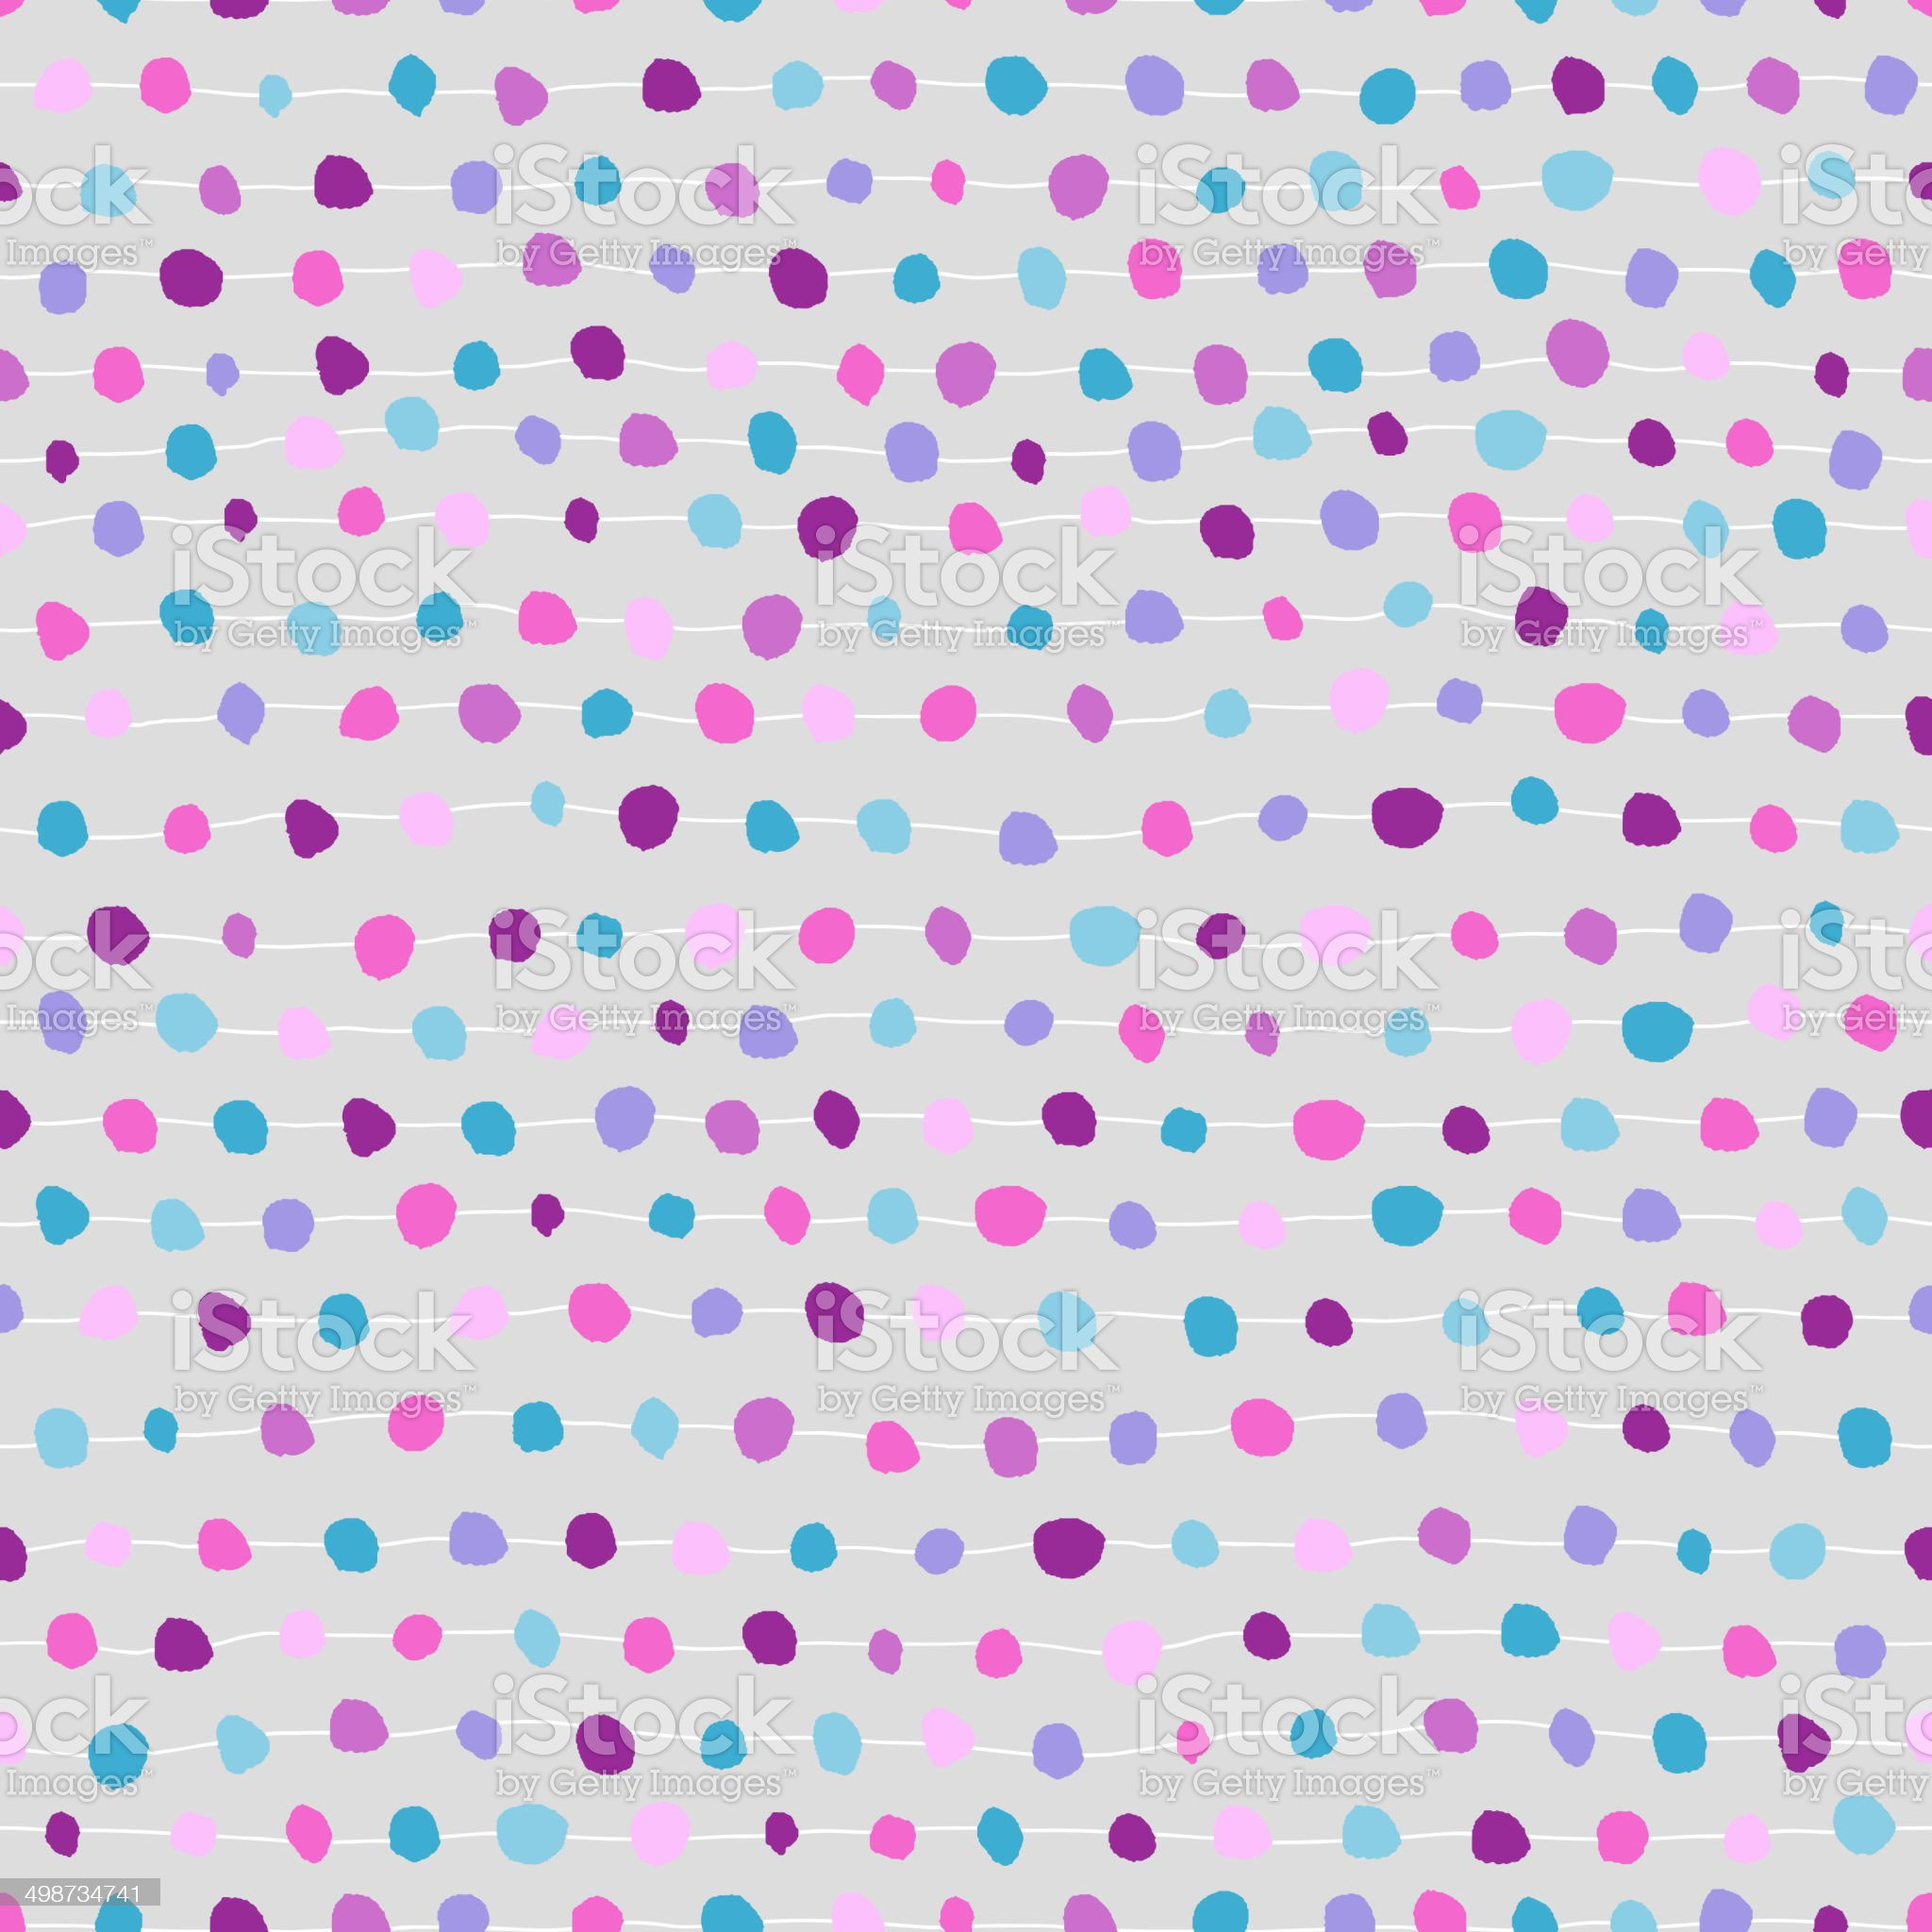 Seamless abstract background of dots and strips royalty-free stock vector art